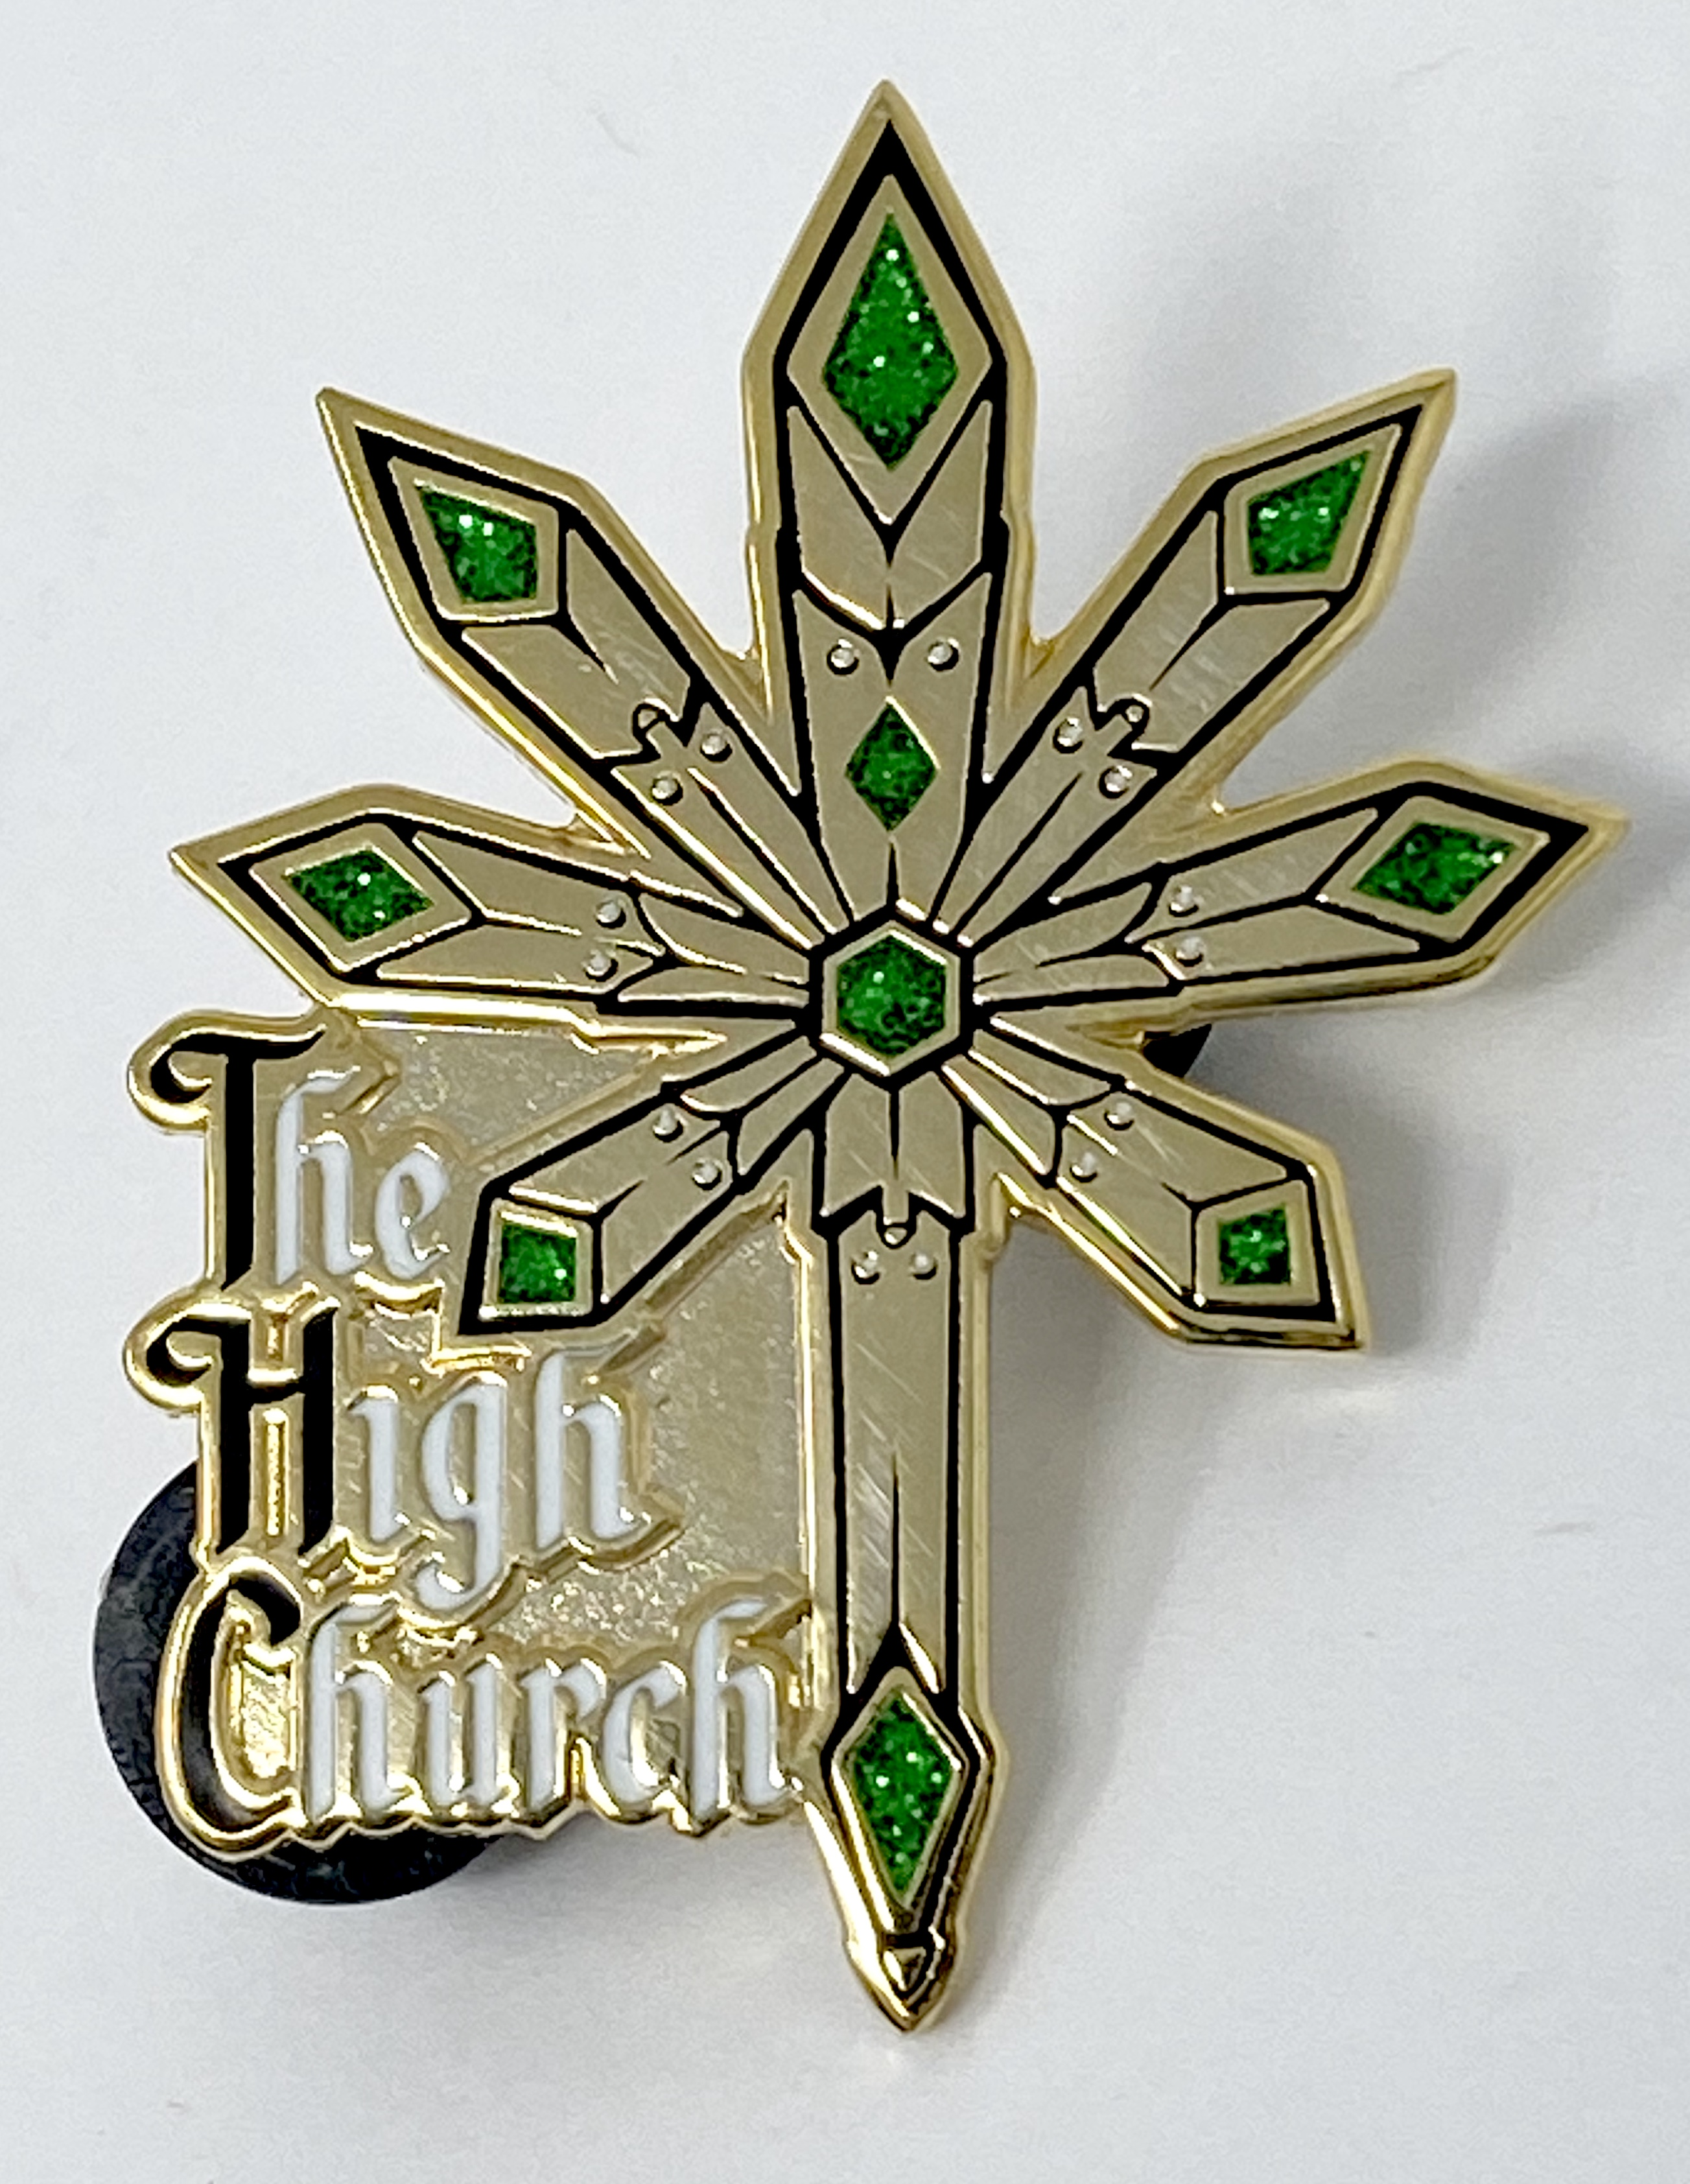 The High Church Pin